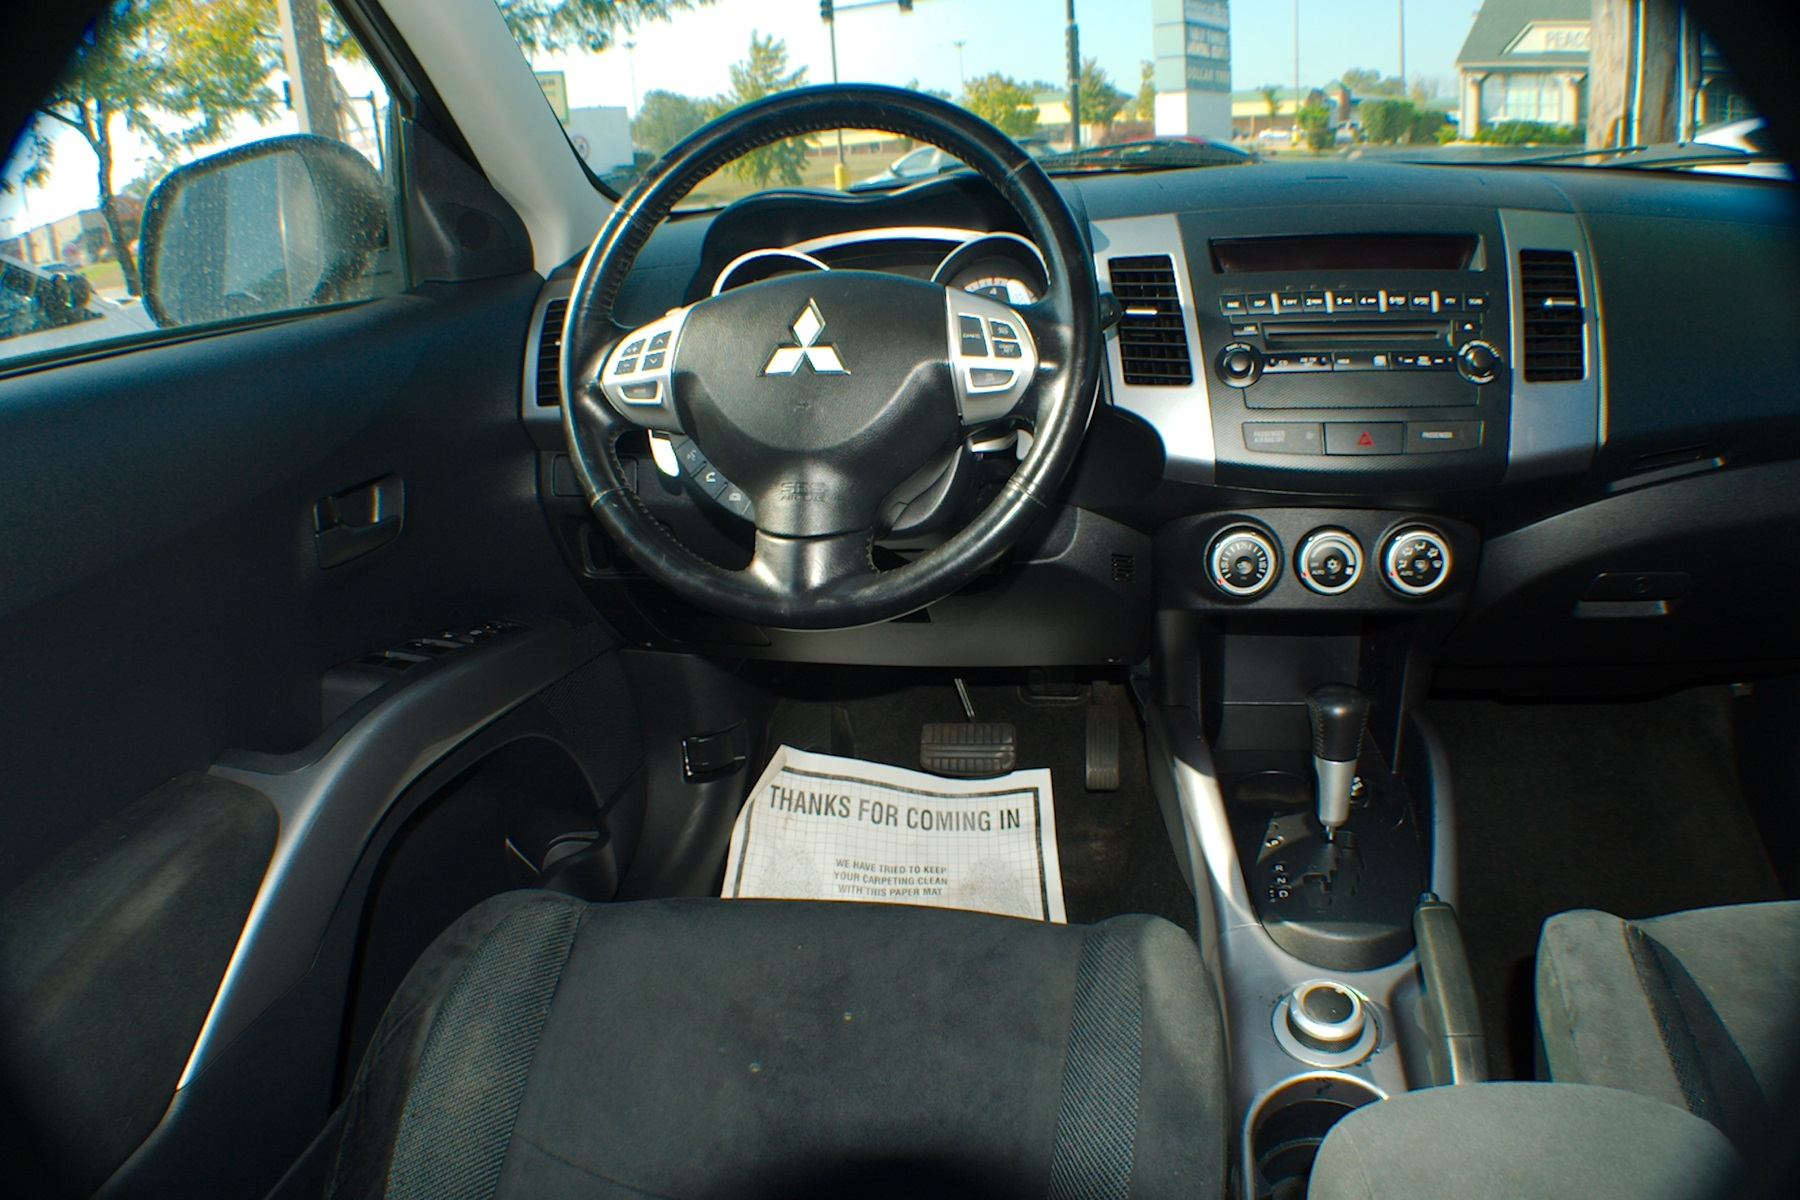 2007 Mitsubishi Outlander Silver SUV Wagon 4x4 Sale Green Oaks Hainesville Hawthorne Woods